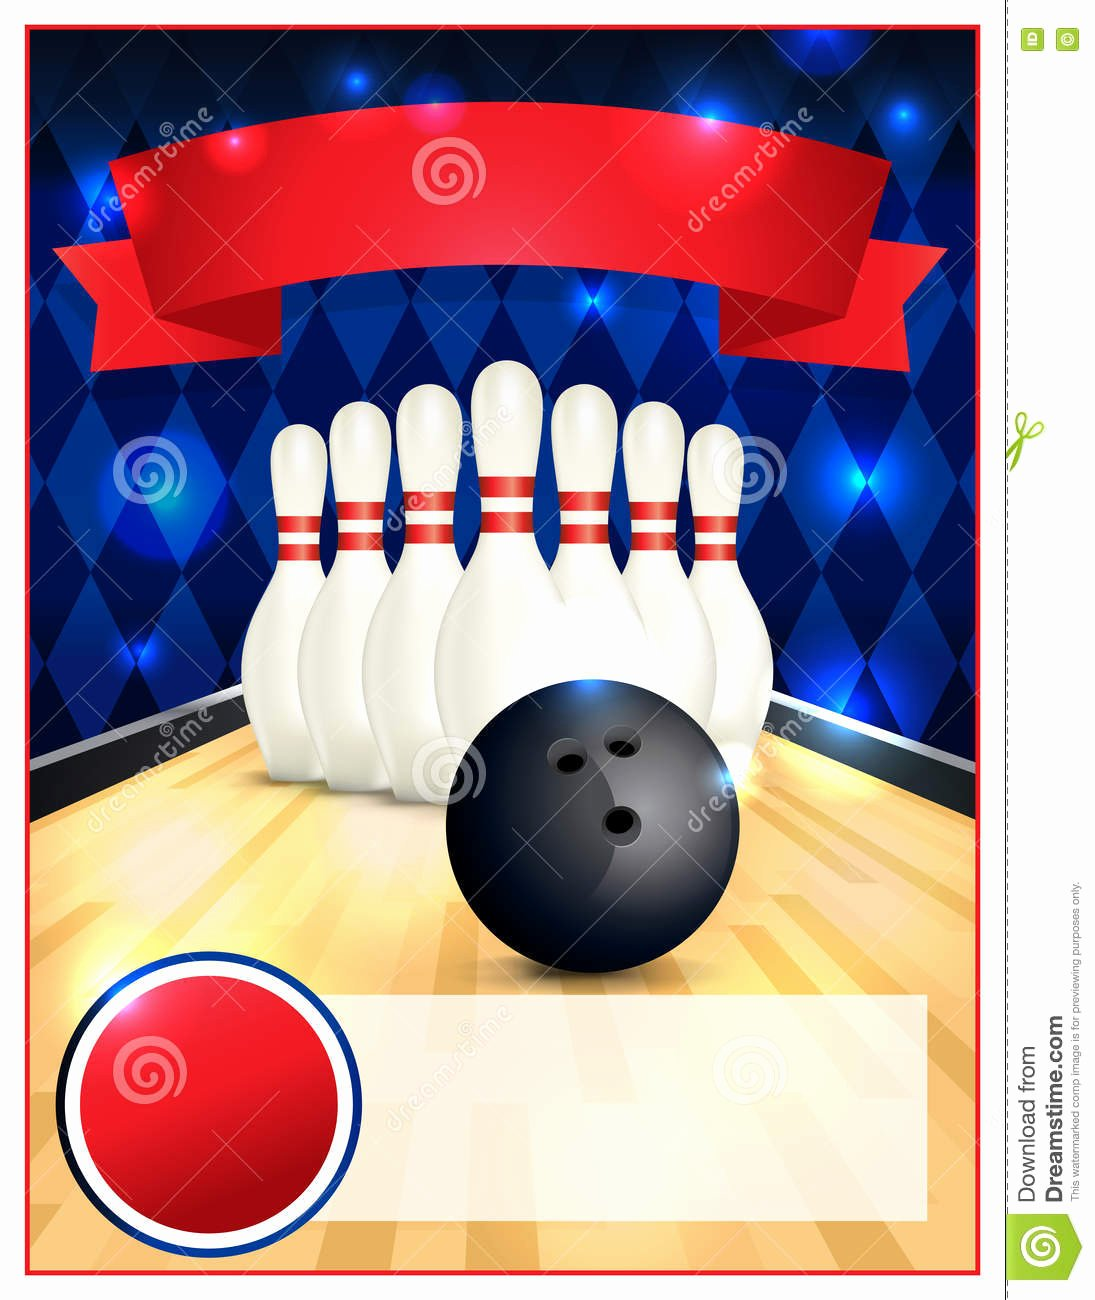 Bowling Flyer Template Free Lovely Blank Bowling Flyer Template Illustration Stock Vector